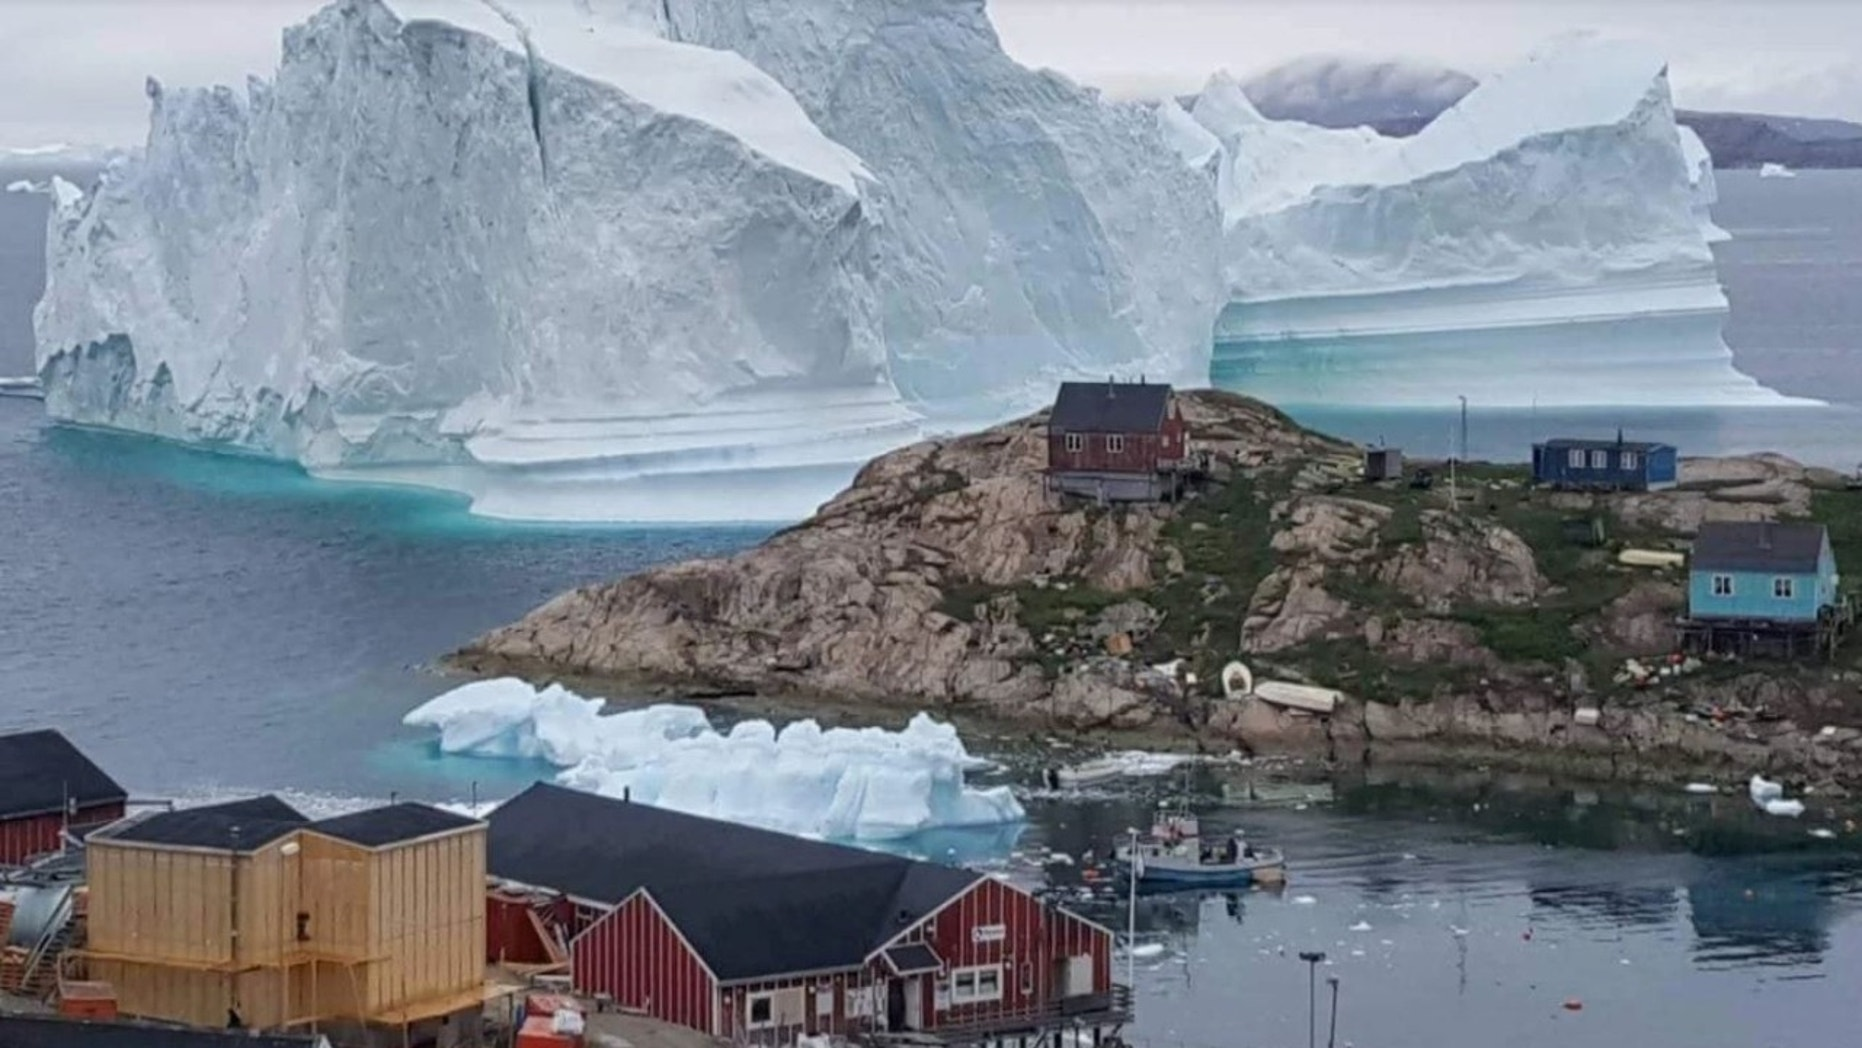 11-million-ton iceberg threatens tiny Greenland village (foxnews.com)